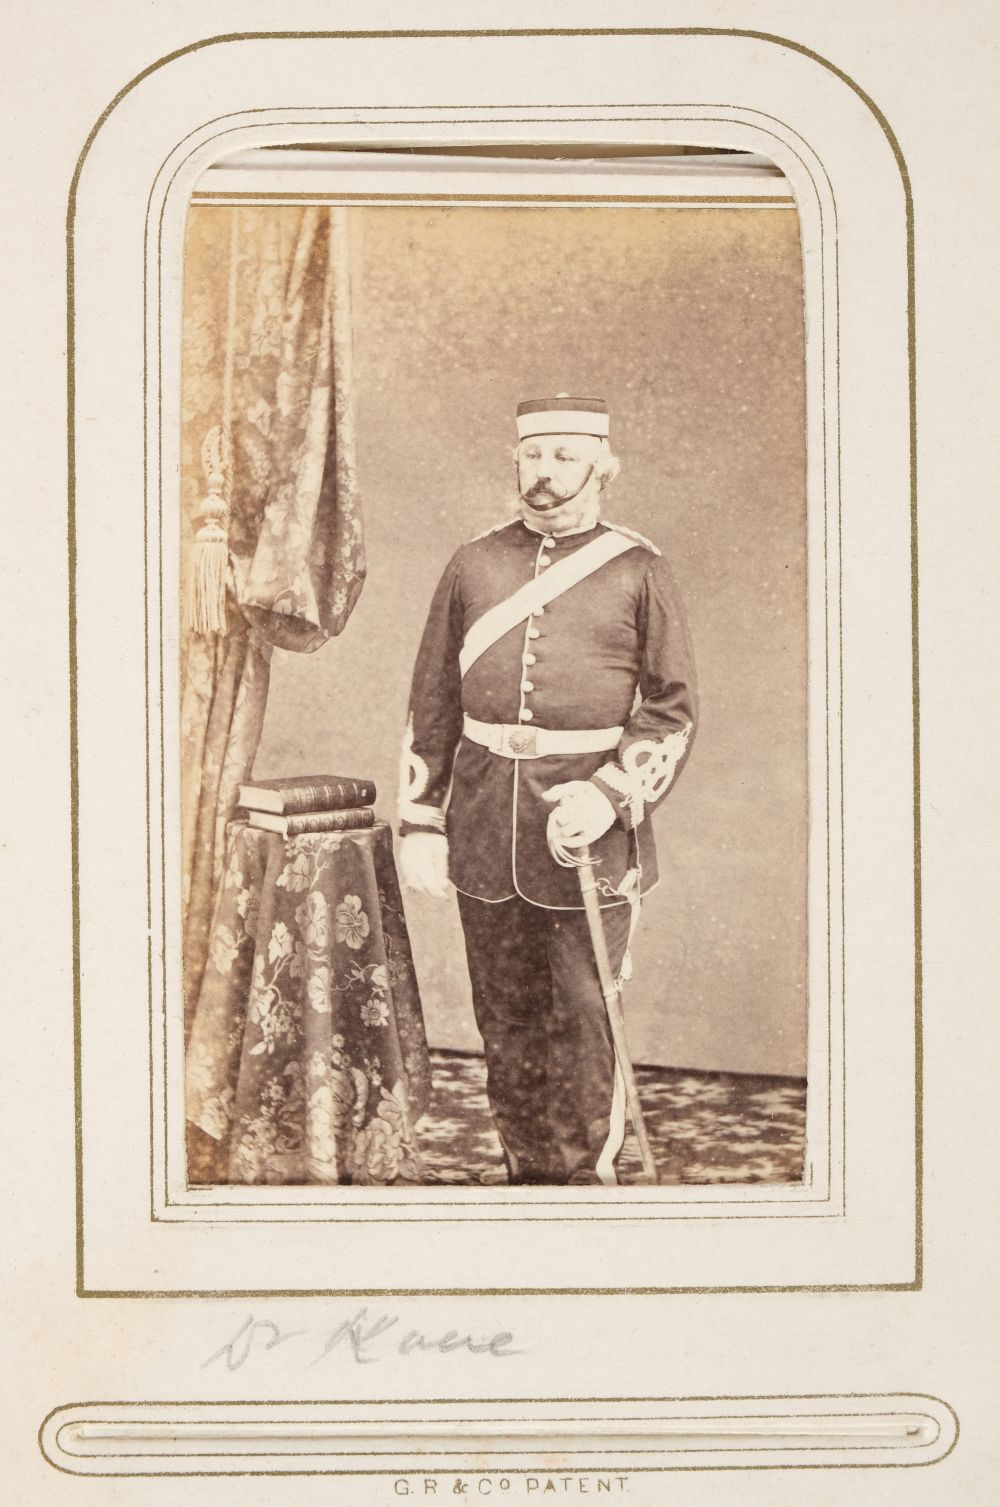 * Cartes de visite. A group of 3 albums of cartes de visite and cabinet cards - Image 26 of 26